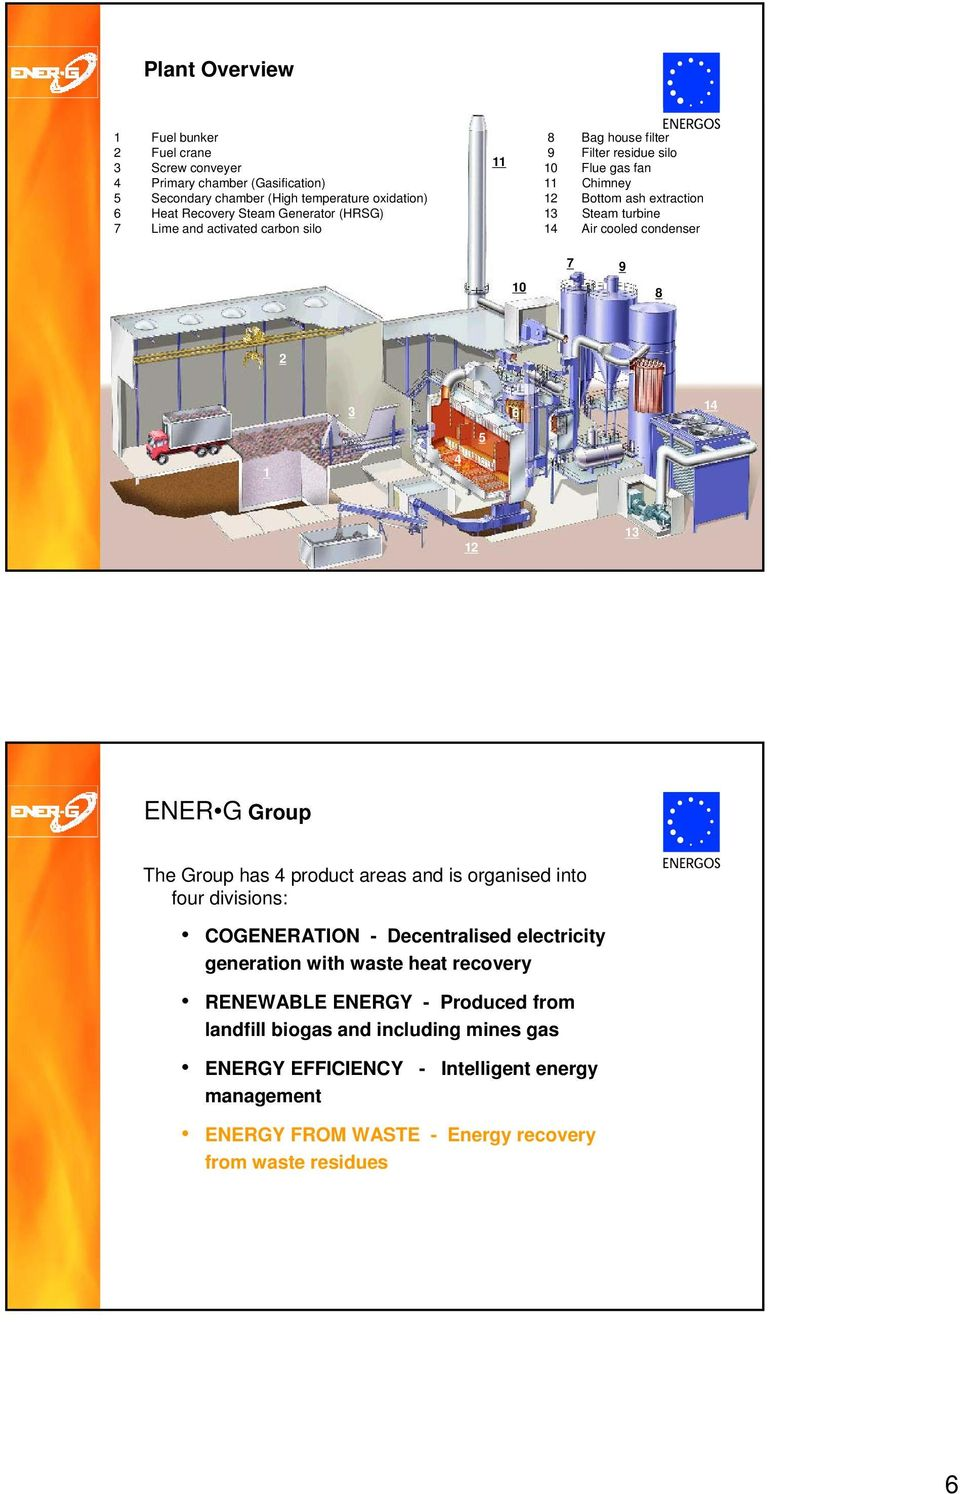 2 3 6 14 5 1 4 12 13 ENER G Group The Group has 4 product areas and is organised into four divisions: COGENERATION - Decentralised electricity generation with waste heat recovery